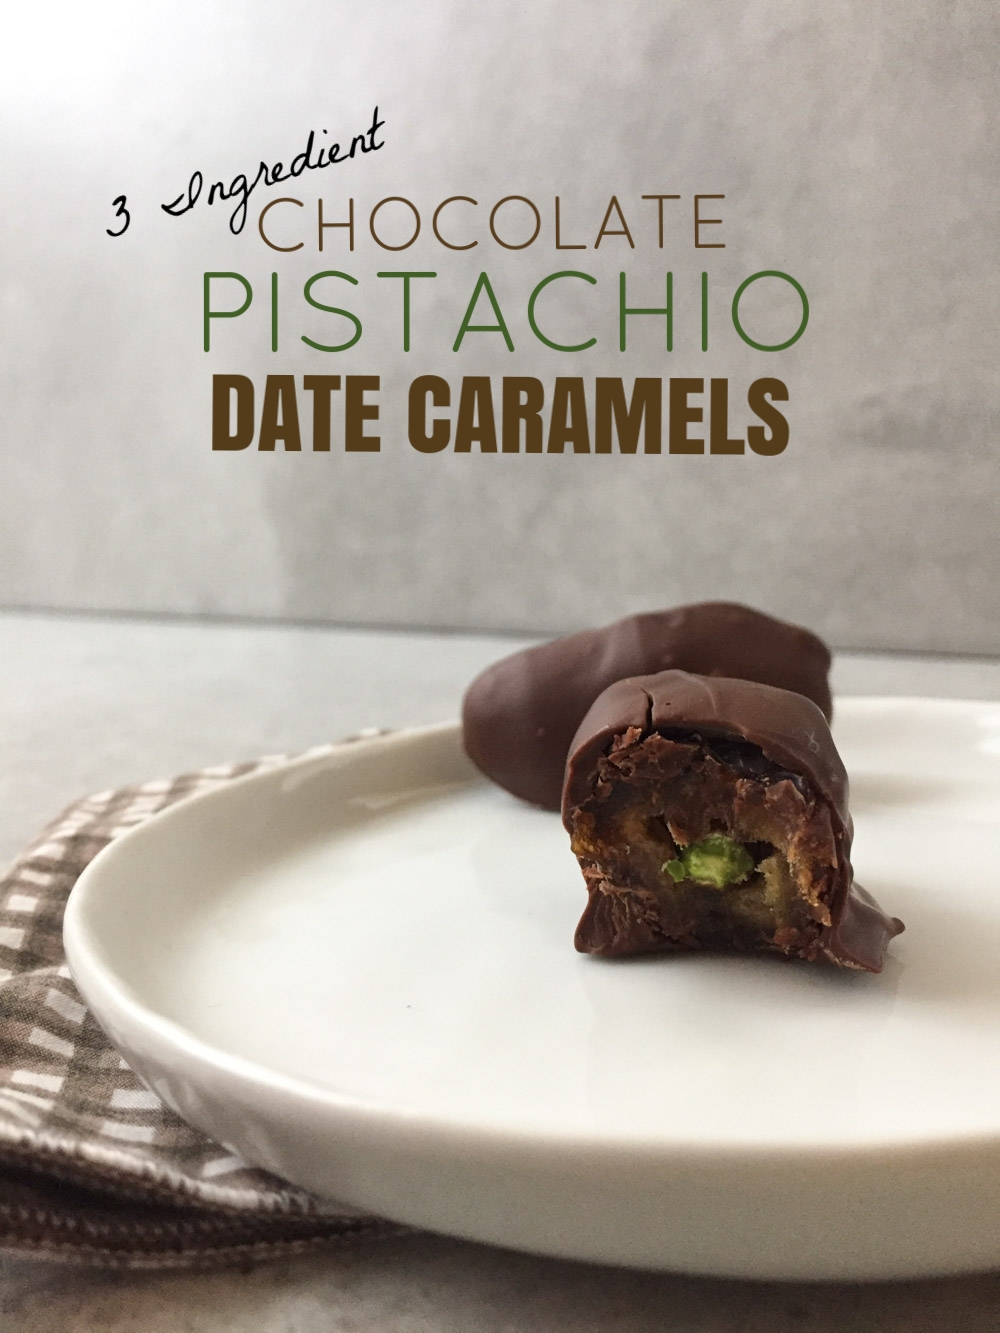 Easy Chocolate Pistachio Date Caramels. Just 3 ingredients!